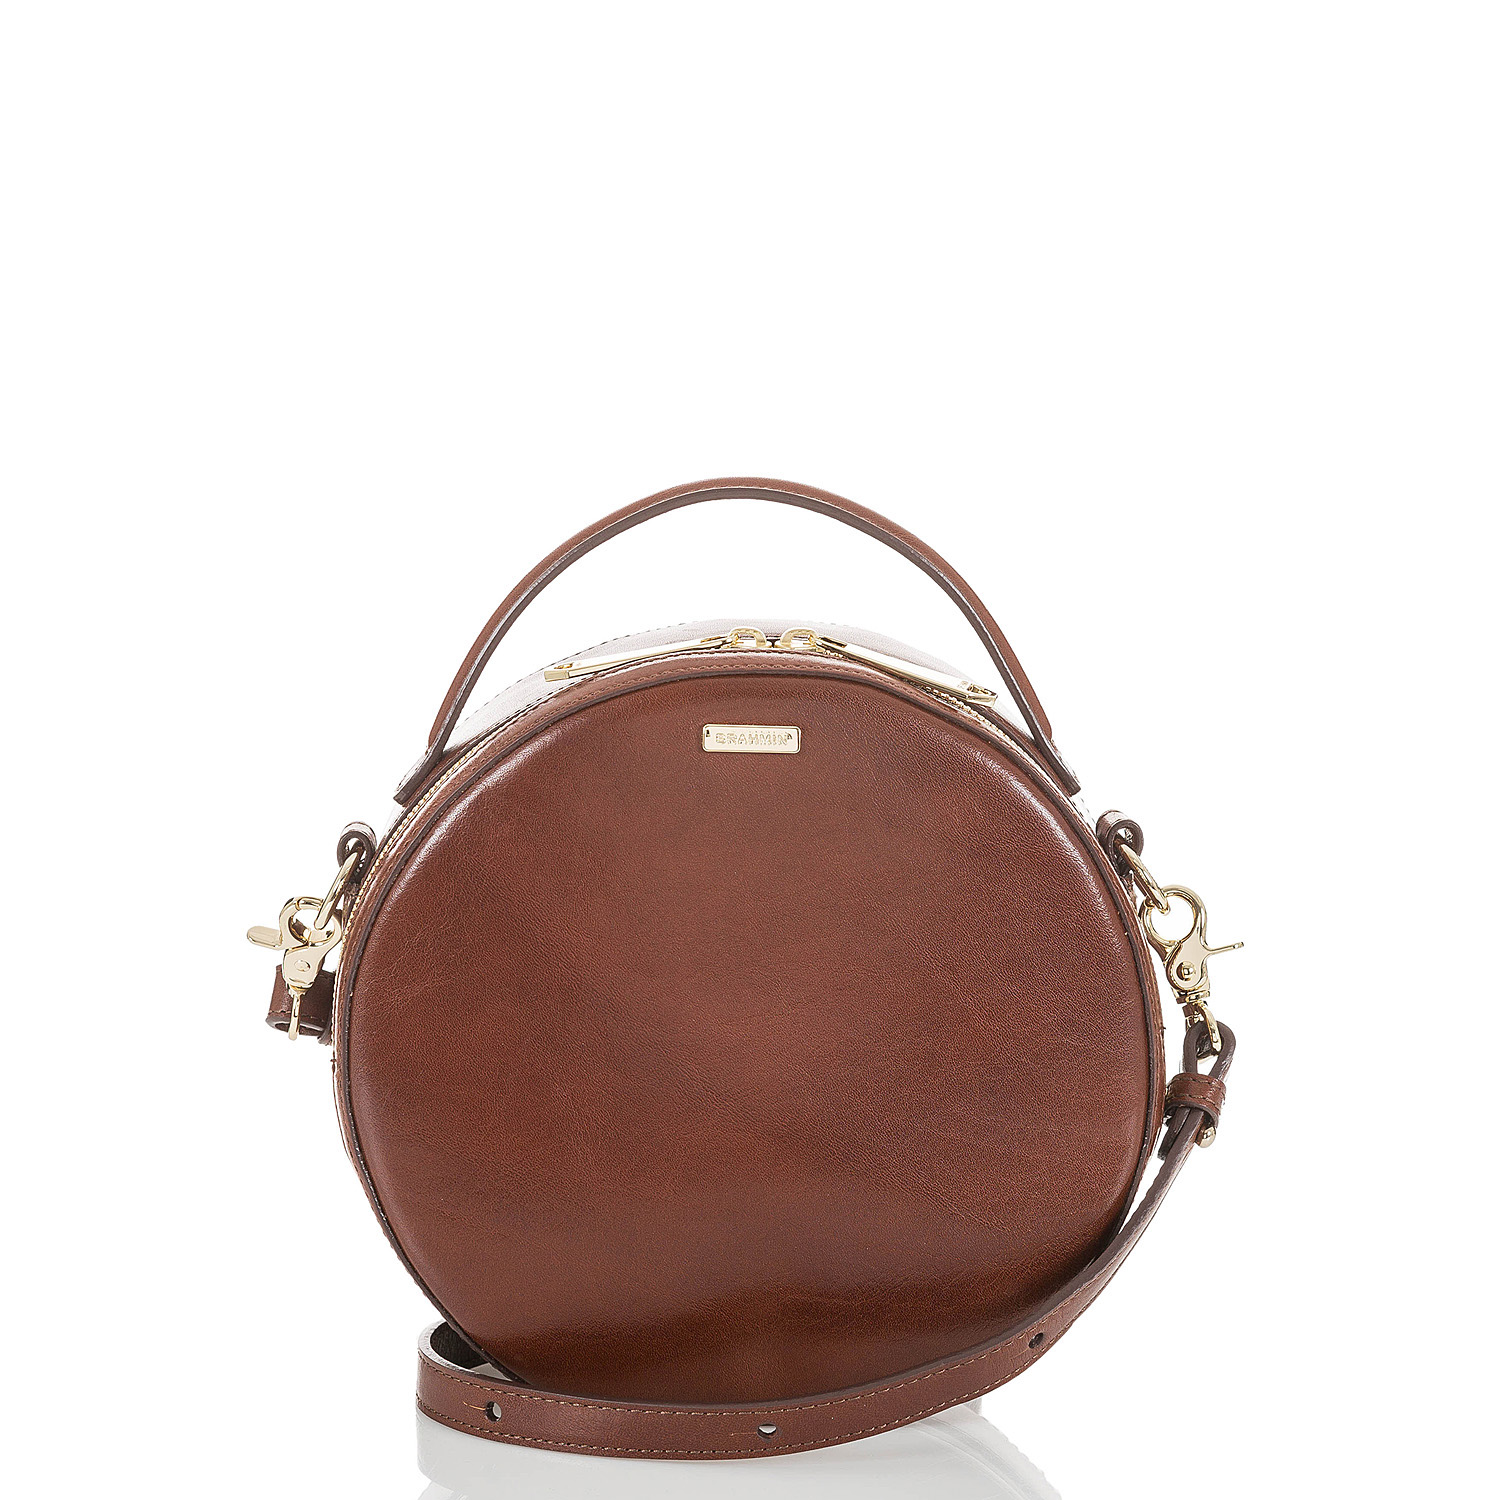 Our signature Lane crossbody looks brand-new rendered in rich Italian leather.